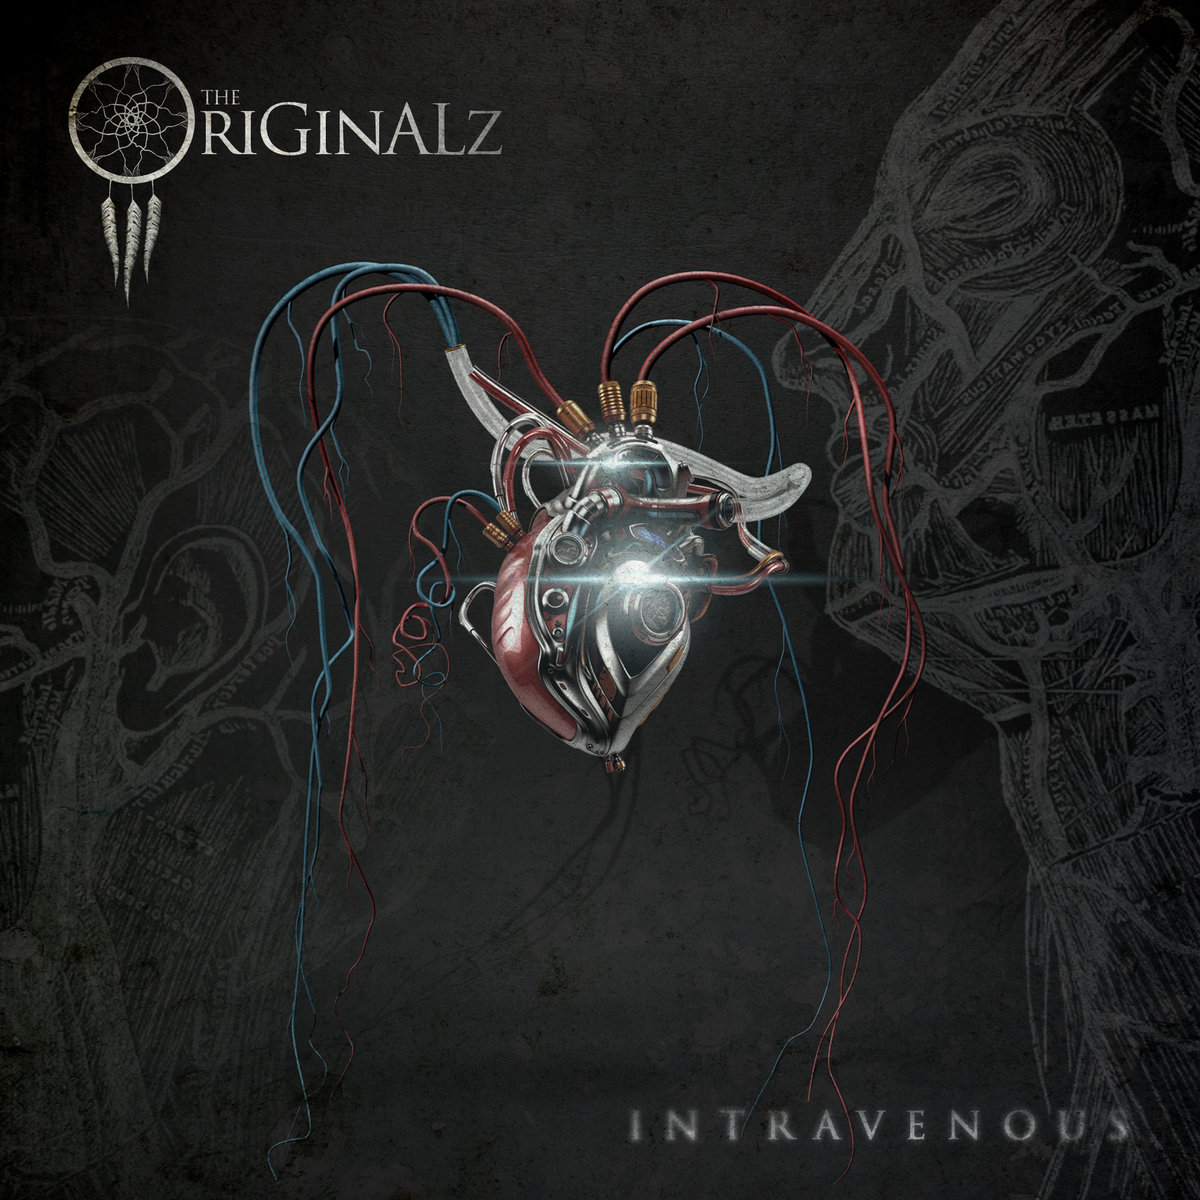 The OriGinALz - Intravenous @ 'Intravenous' album (Austin)